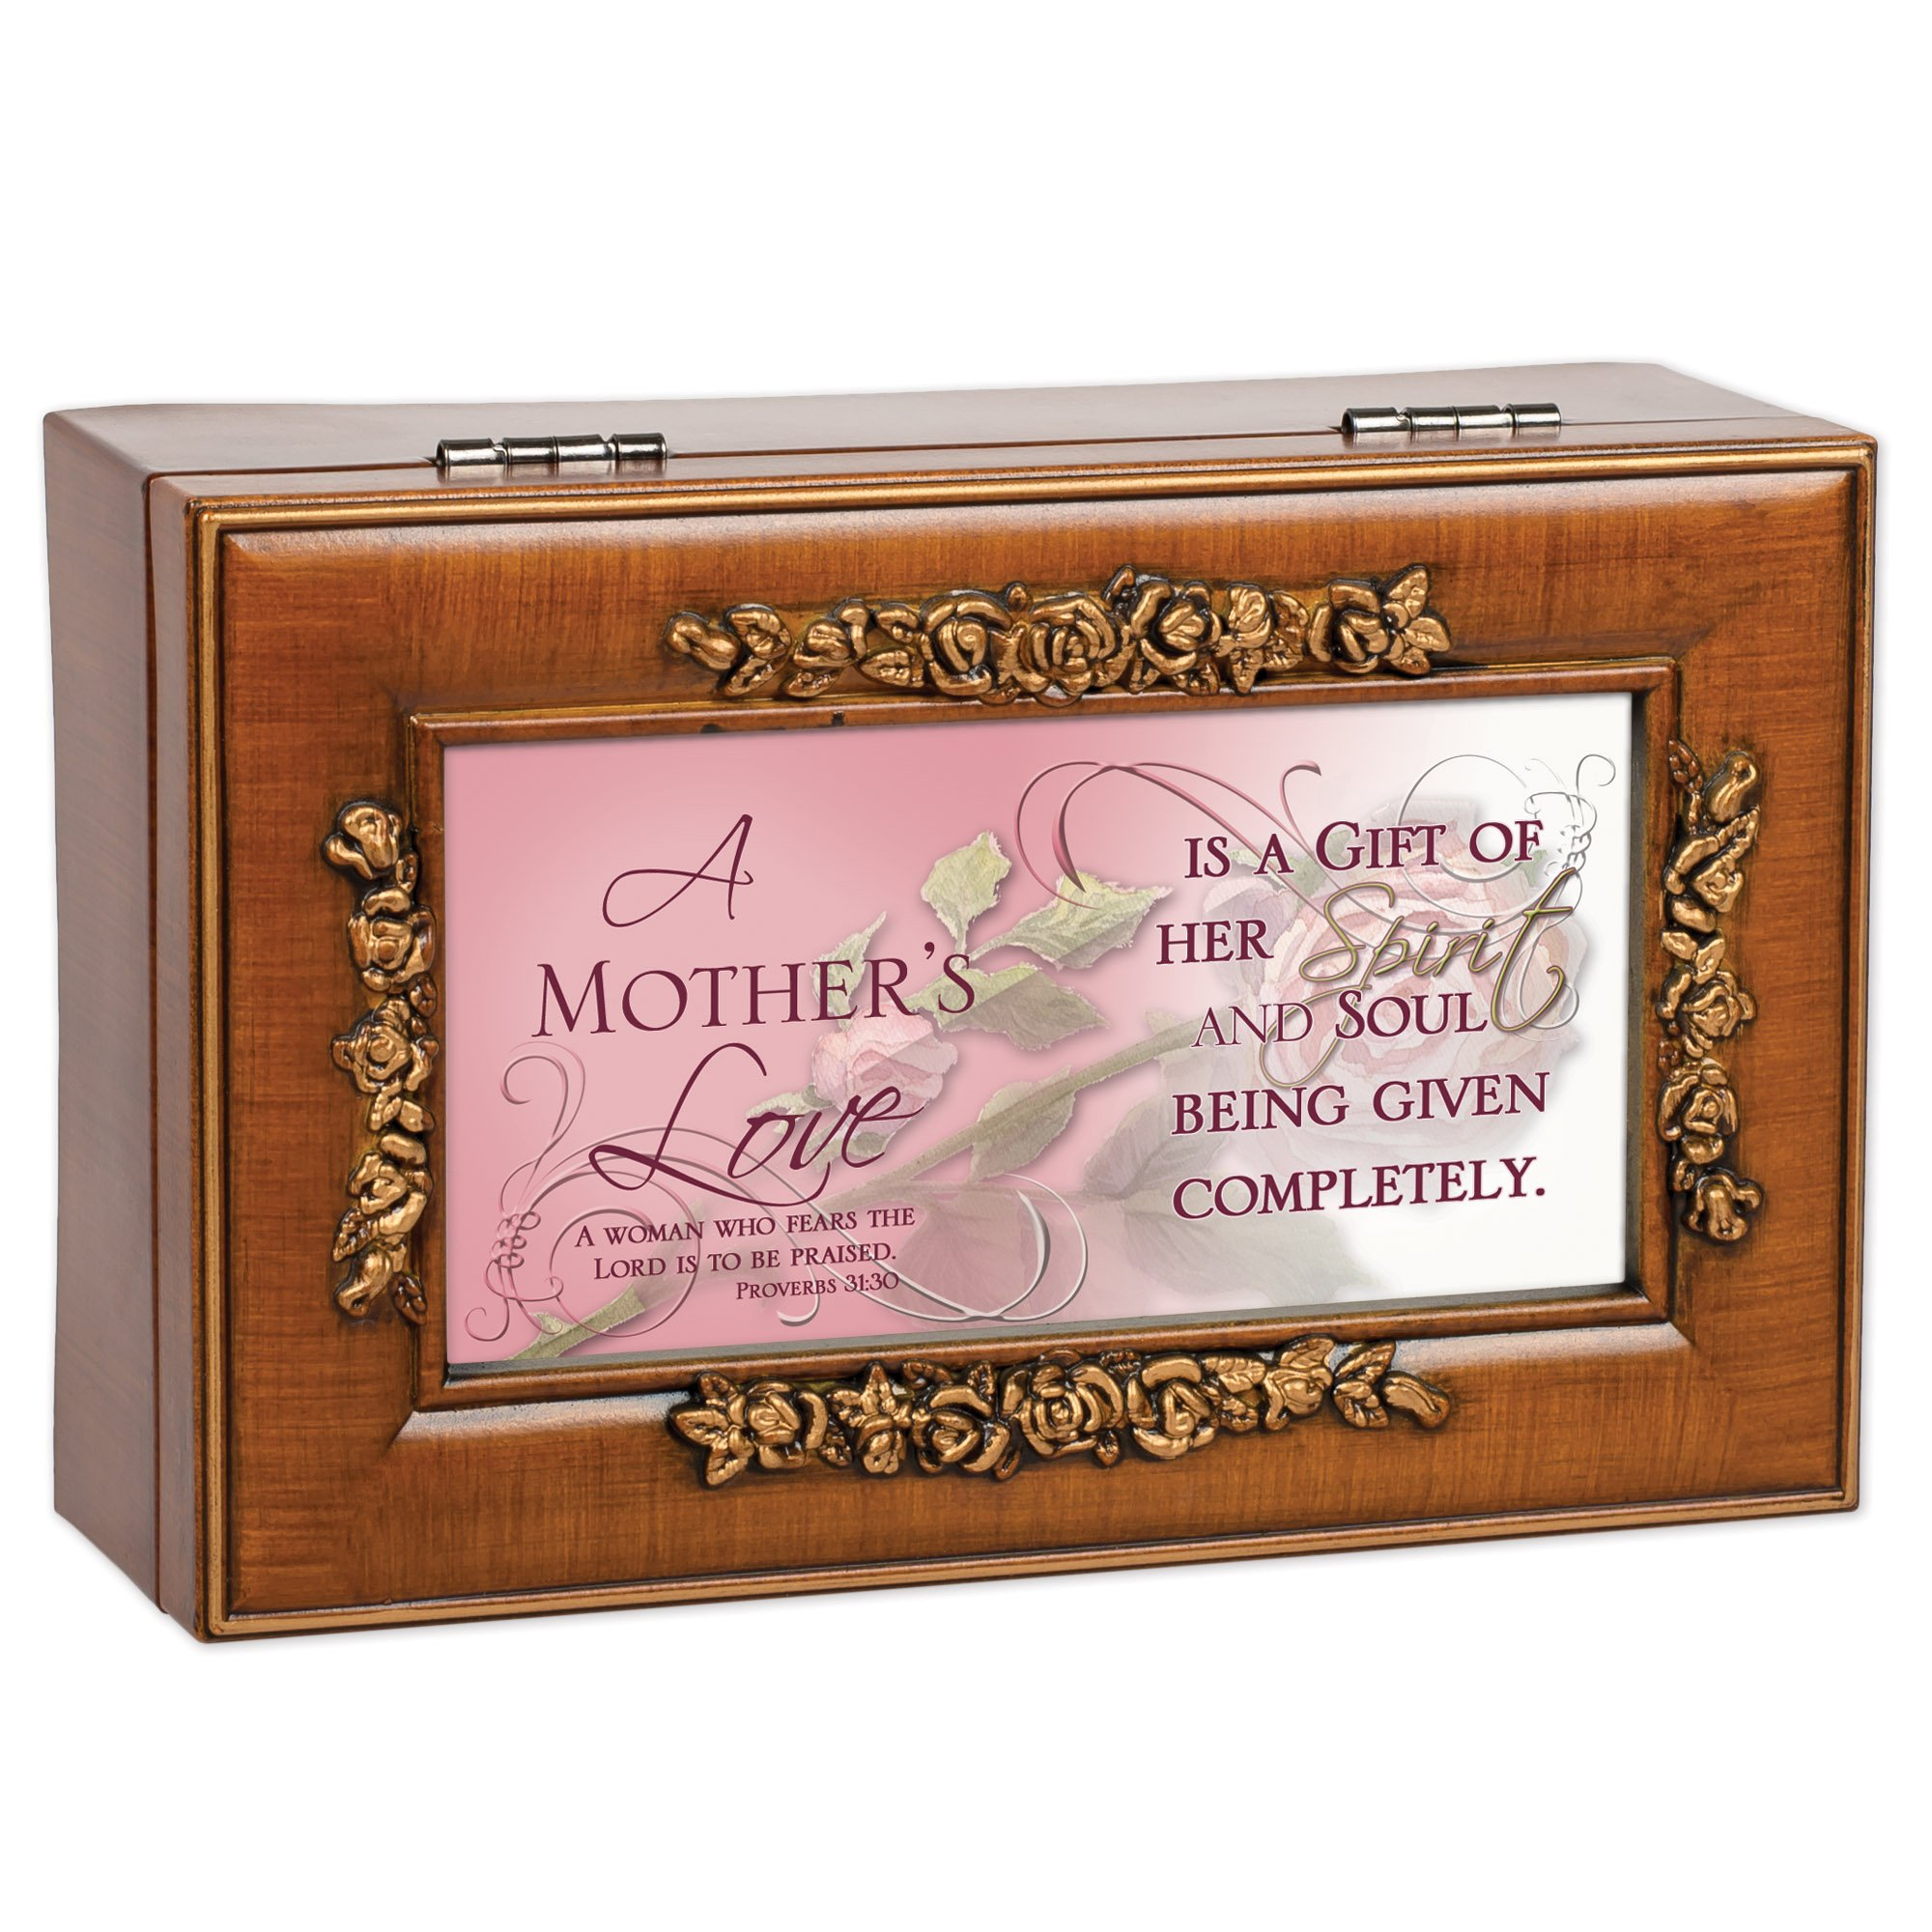 Cottage Garden Mother's Love Inspirational Decorative Woodgrain Rose Music Box - Plays How Great Thou Art by Cottage Garden (Image #2)